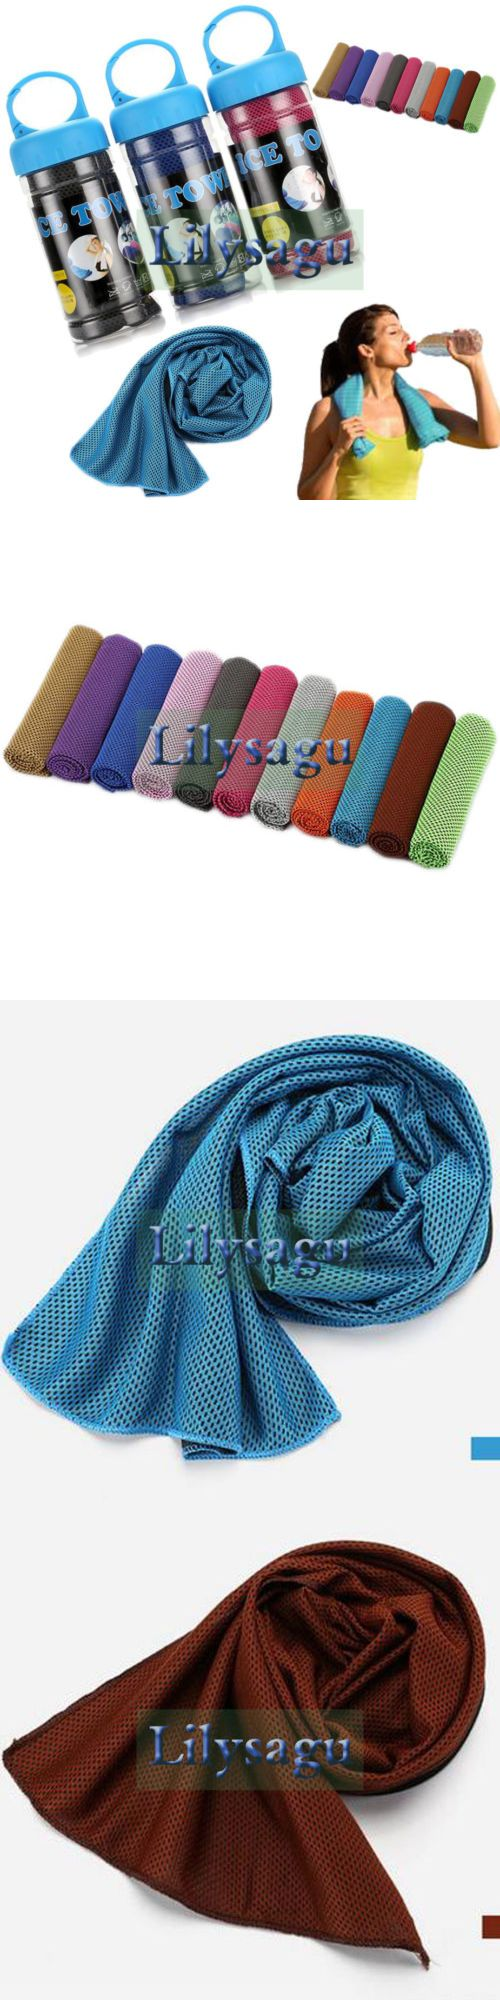 Gym Towels 179801: 100Pcs Lot Cooling Towel Sports Gym Towel Drying Sweat Pets Baby Absorb Dry Case -> BUY IT NOW ONLY: $315 on eBay!